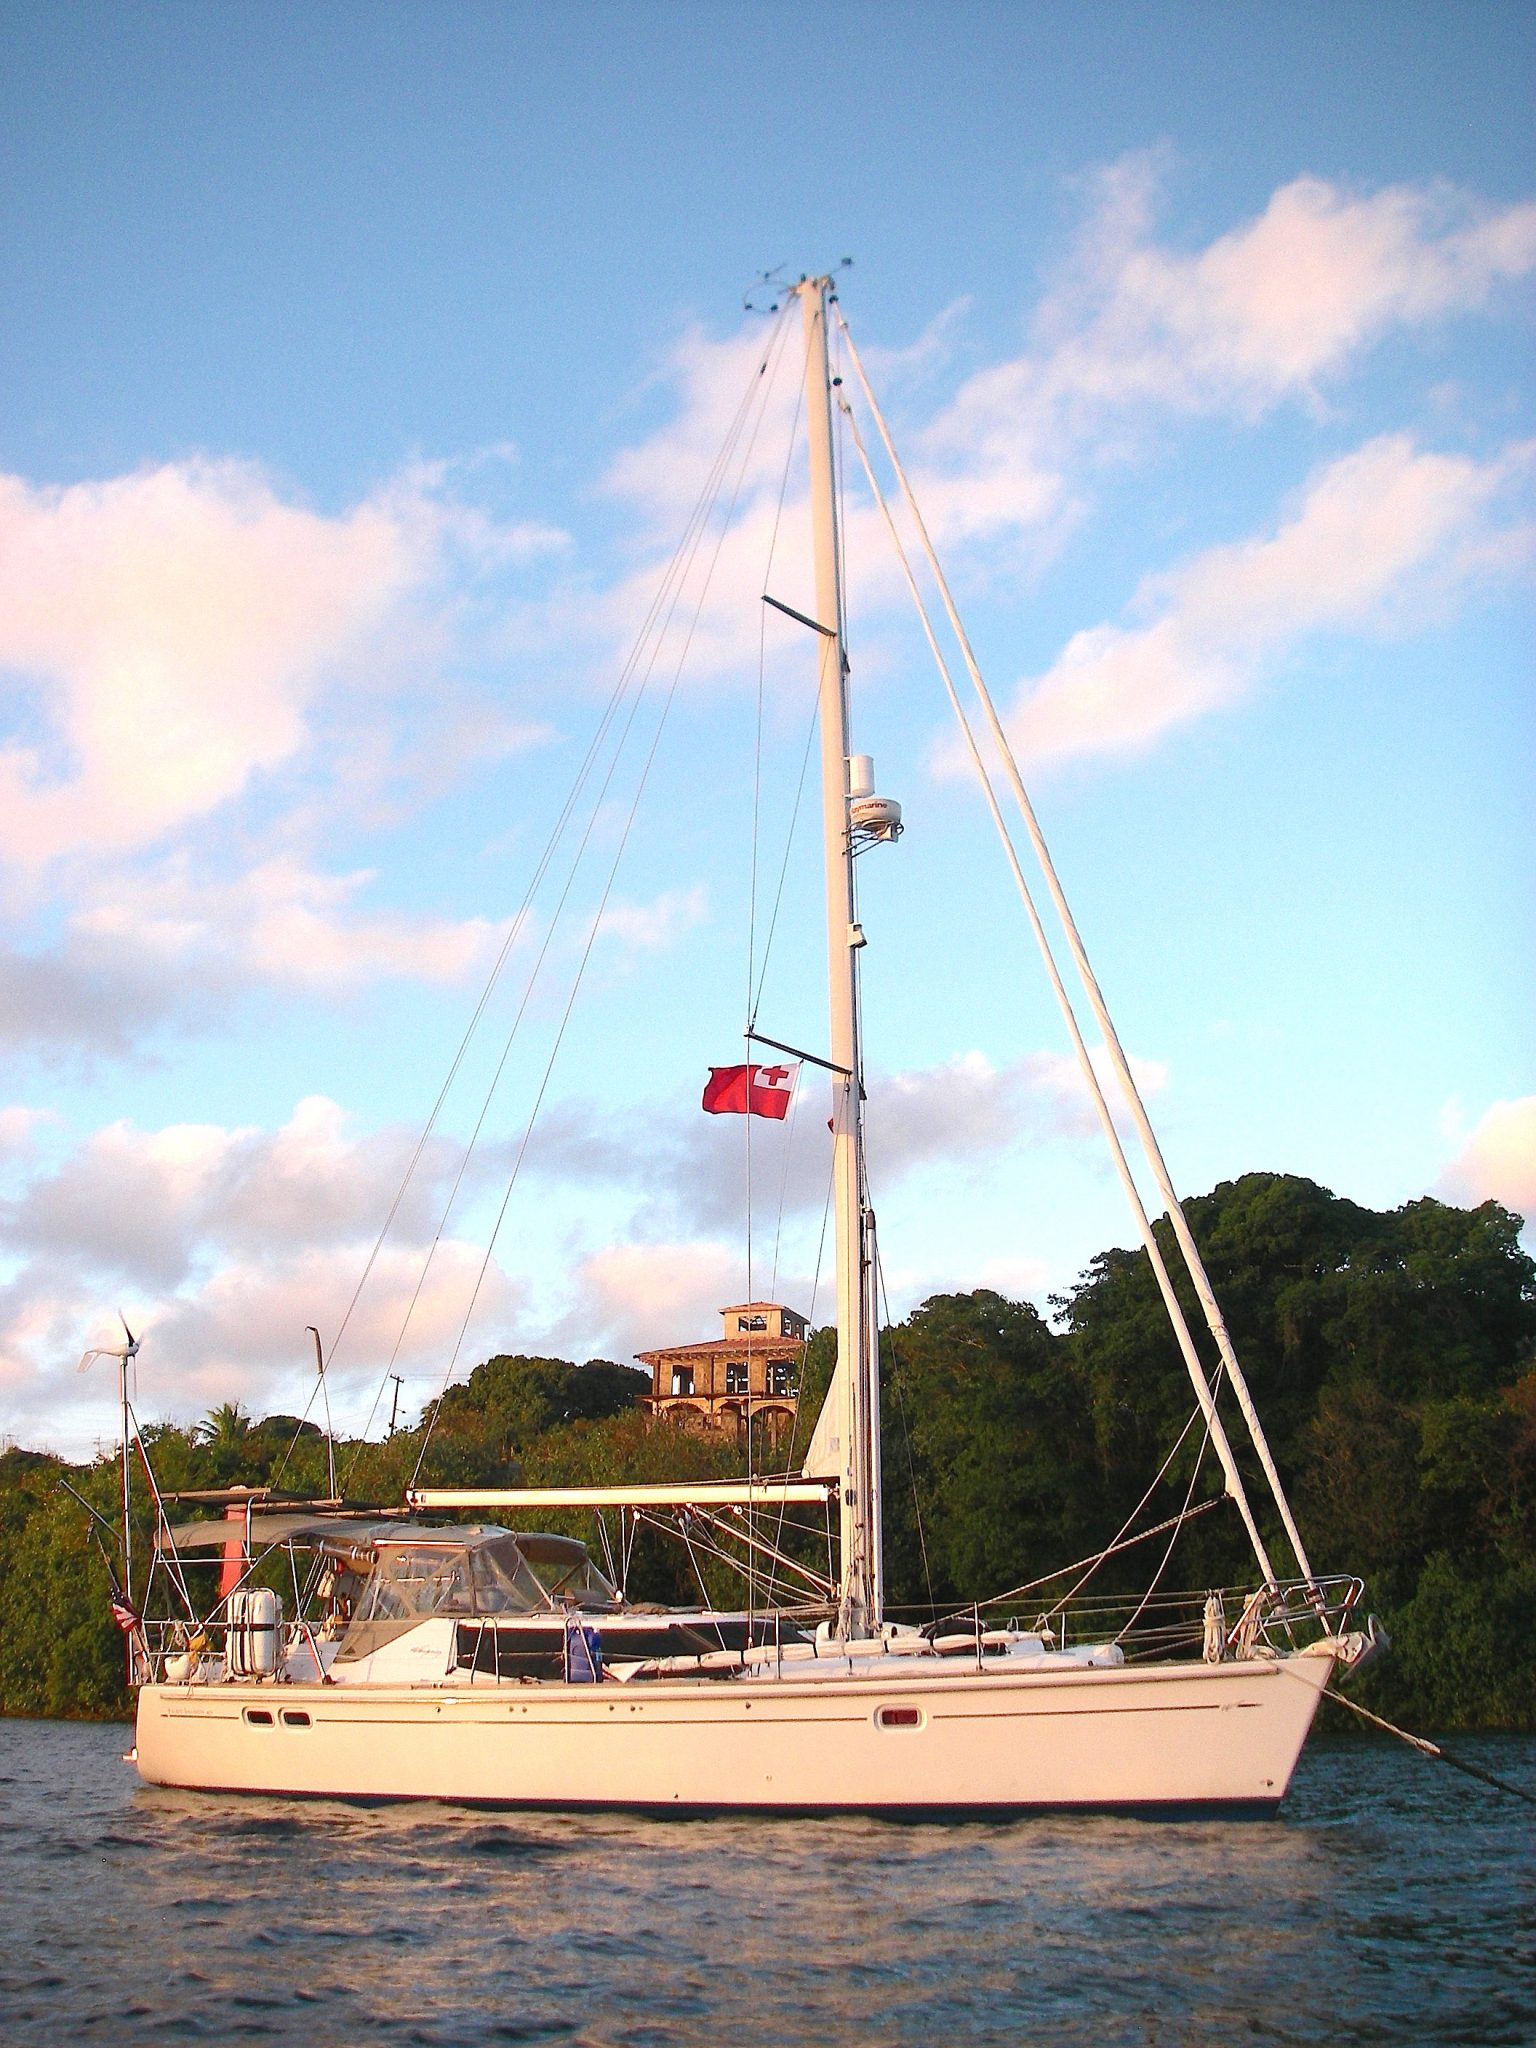 20. Joyful at sunset moored in Neiafu, Vava'u, Tonga